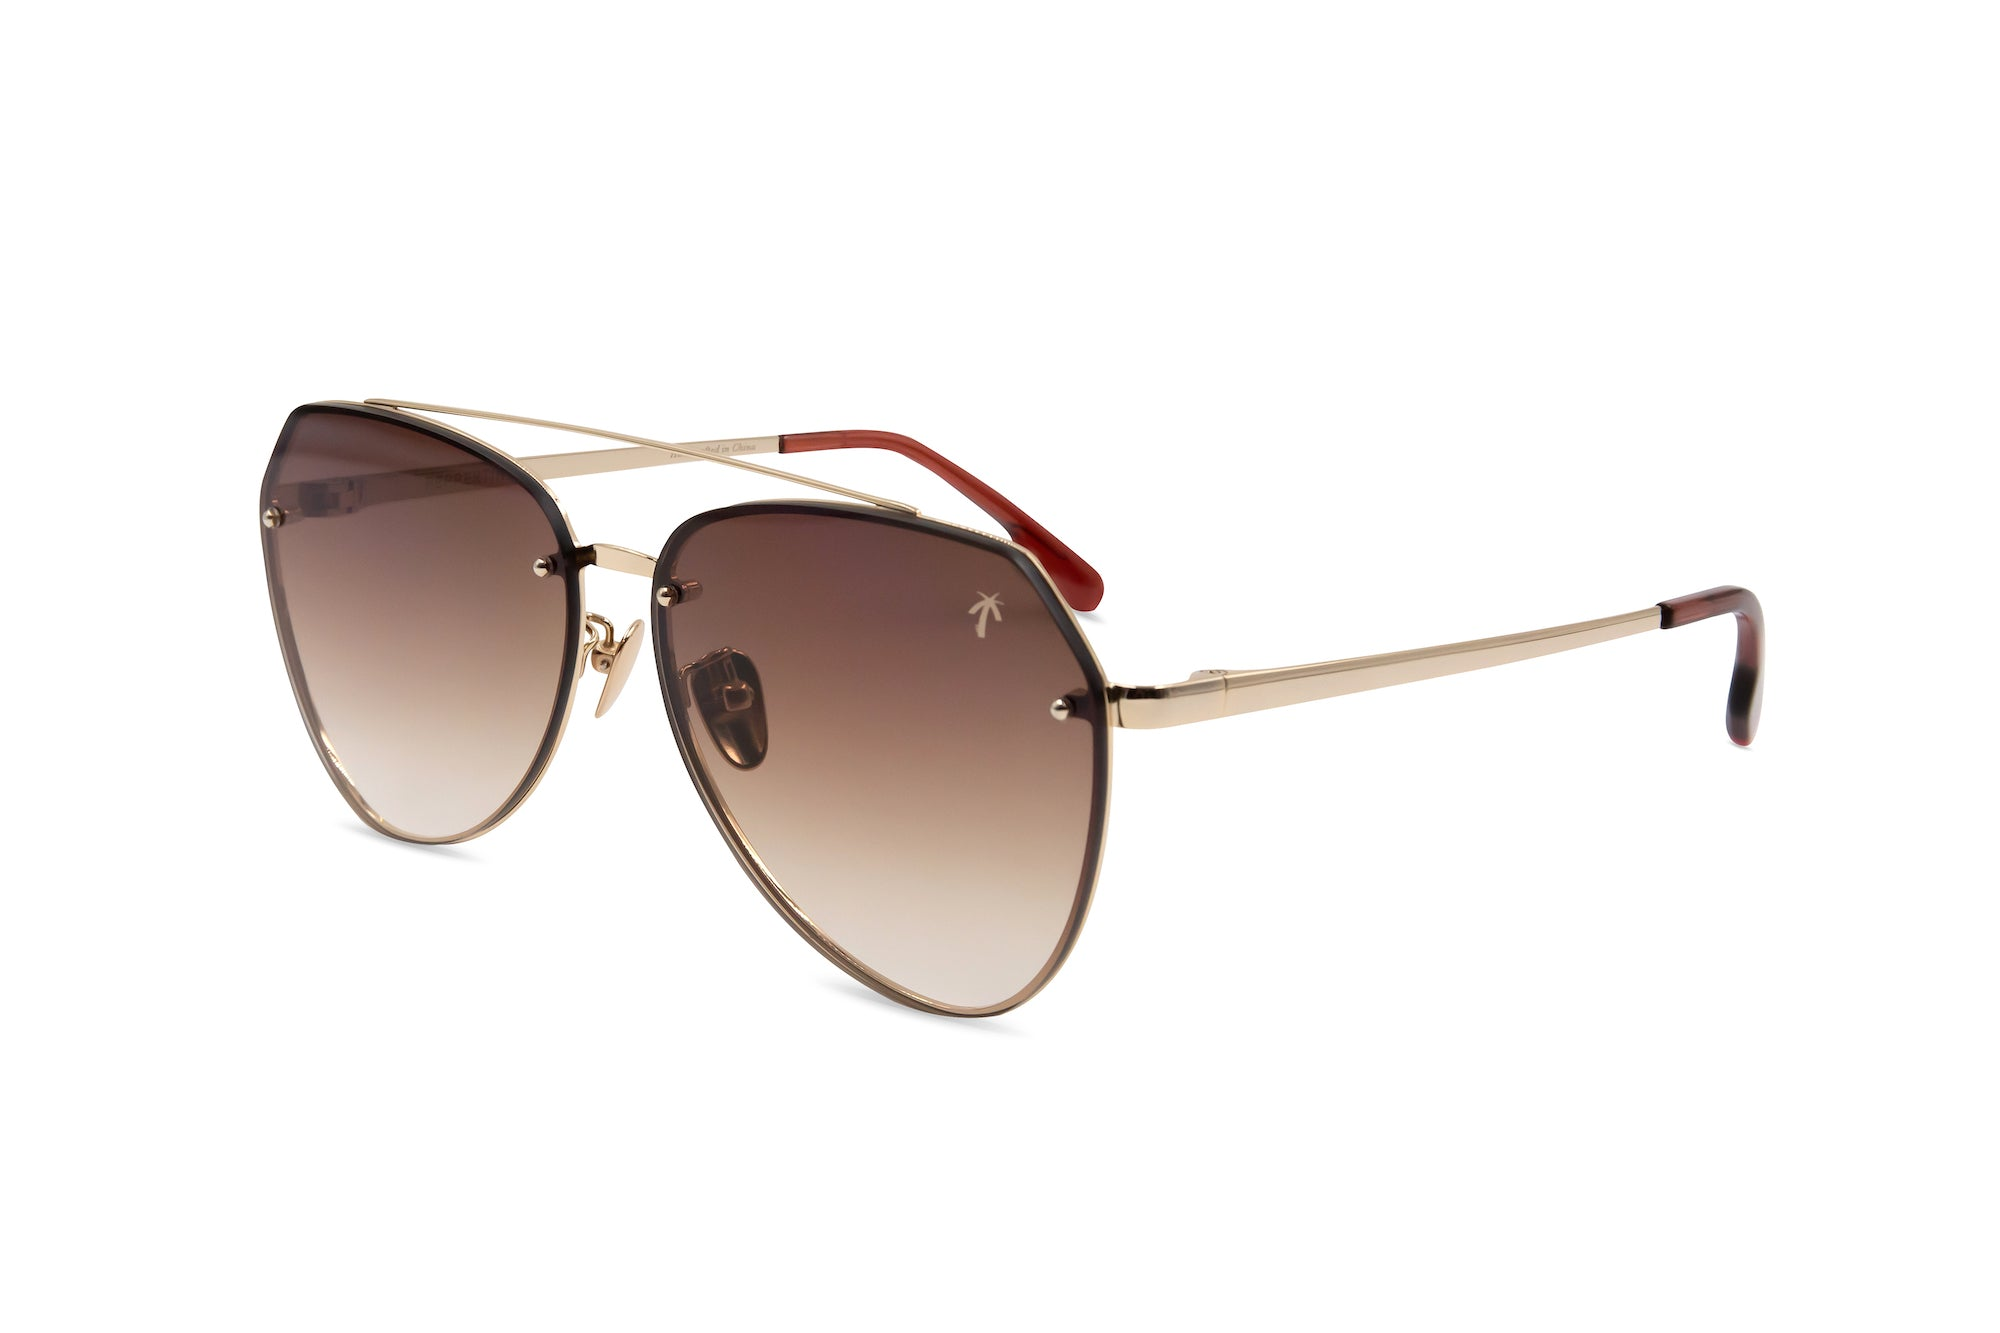 Doheny in Brown Gradient - Peppertint - Designer sunglasses